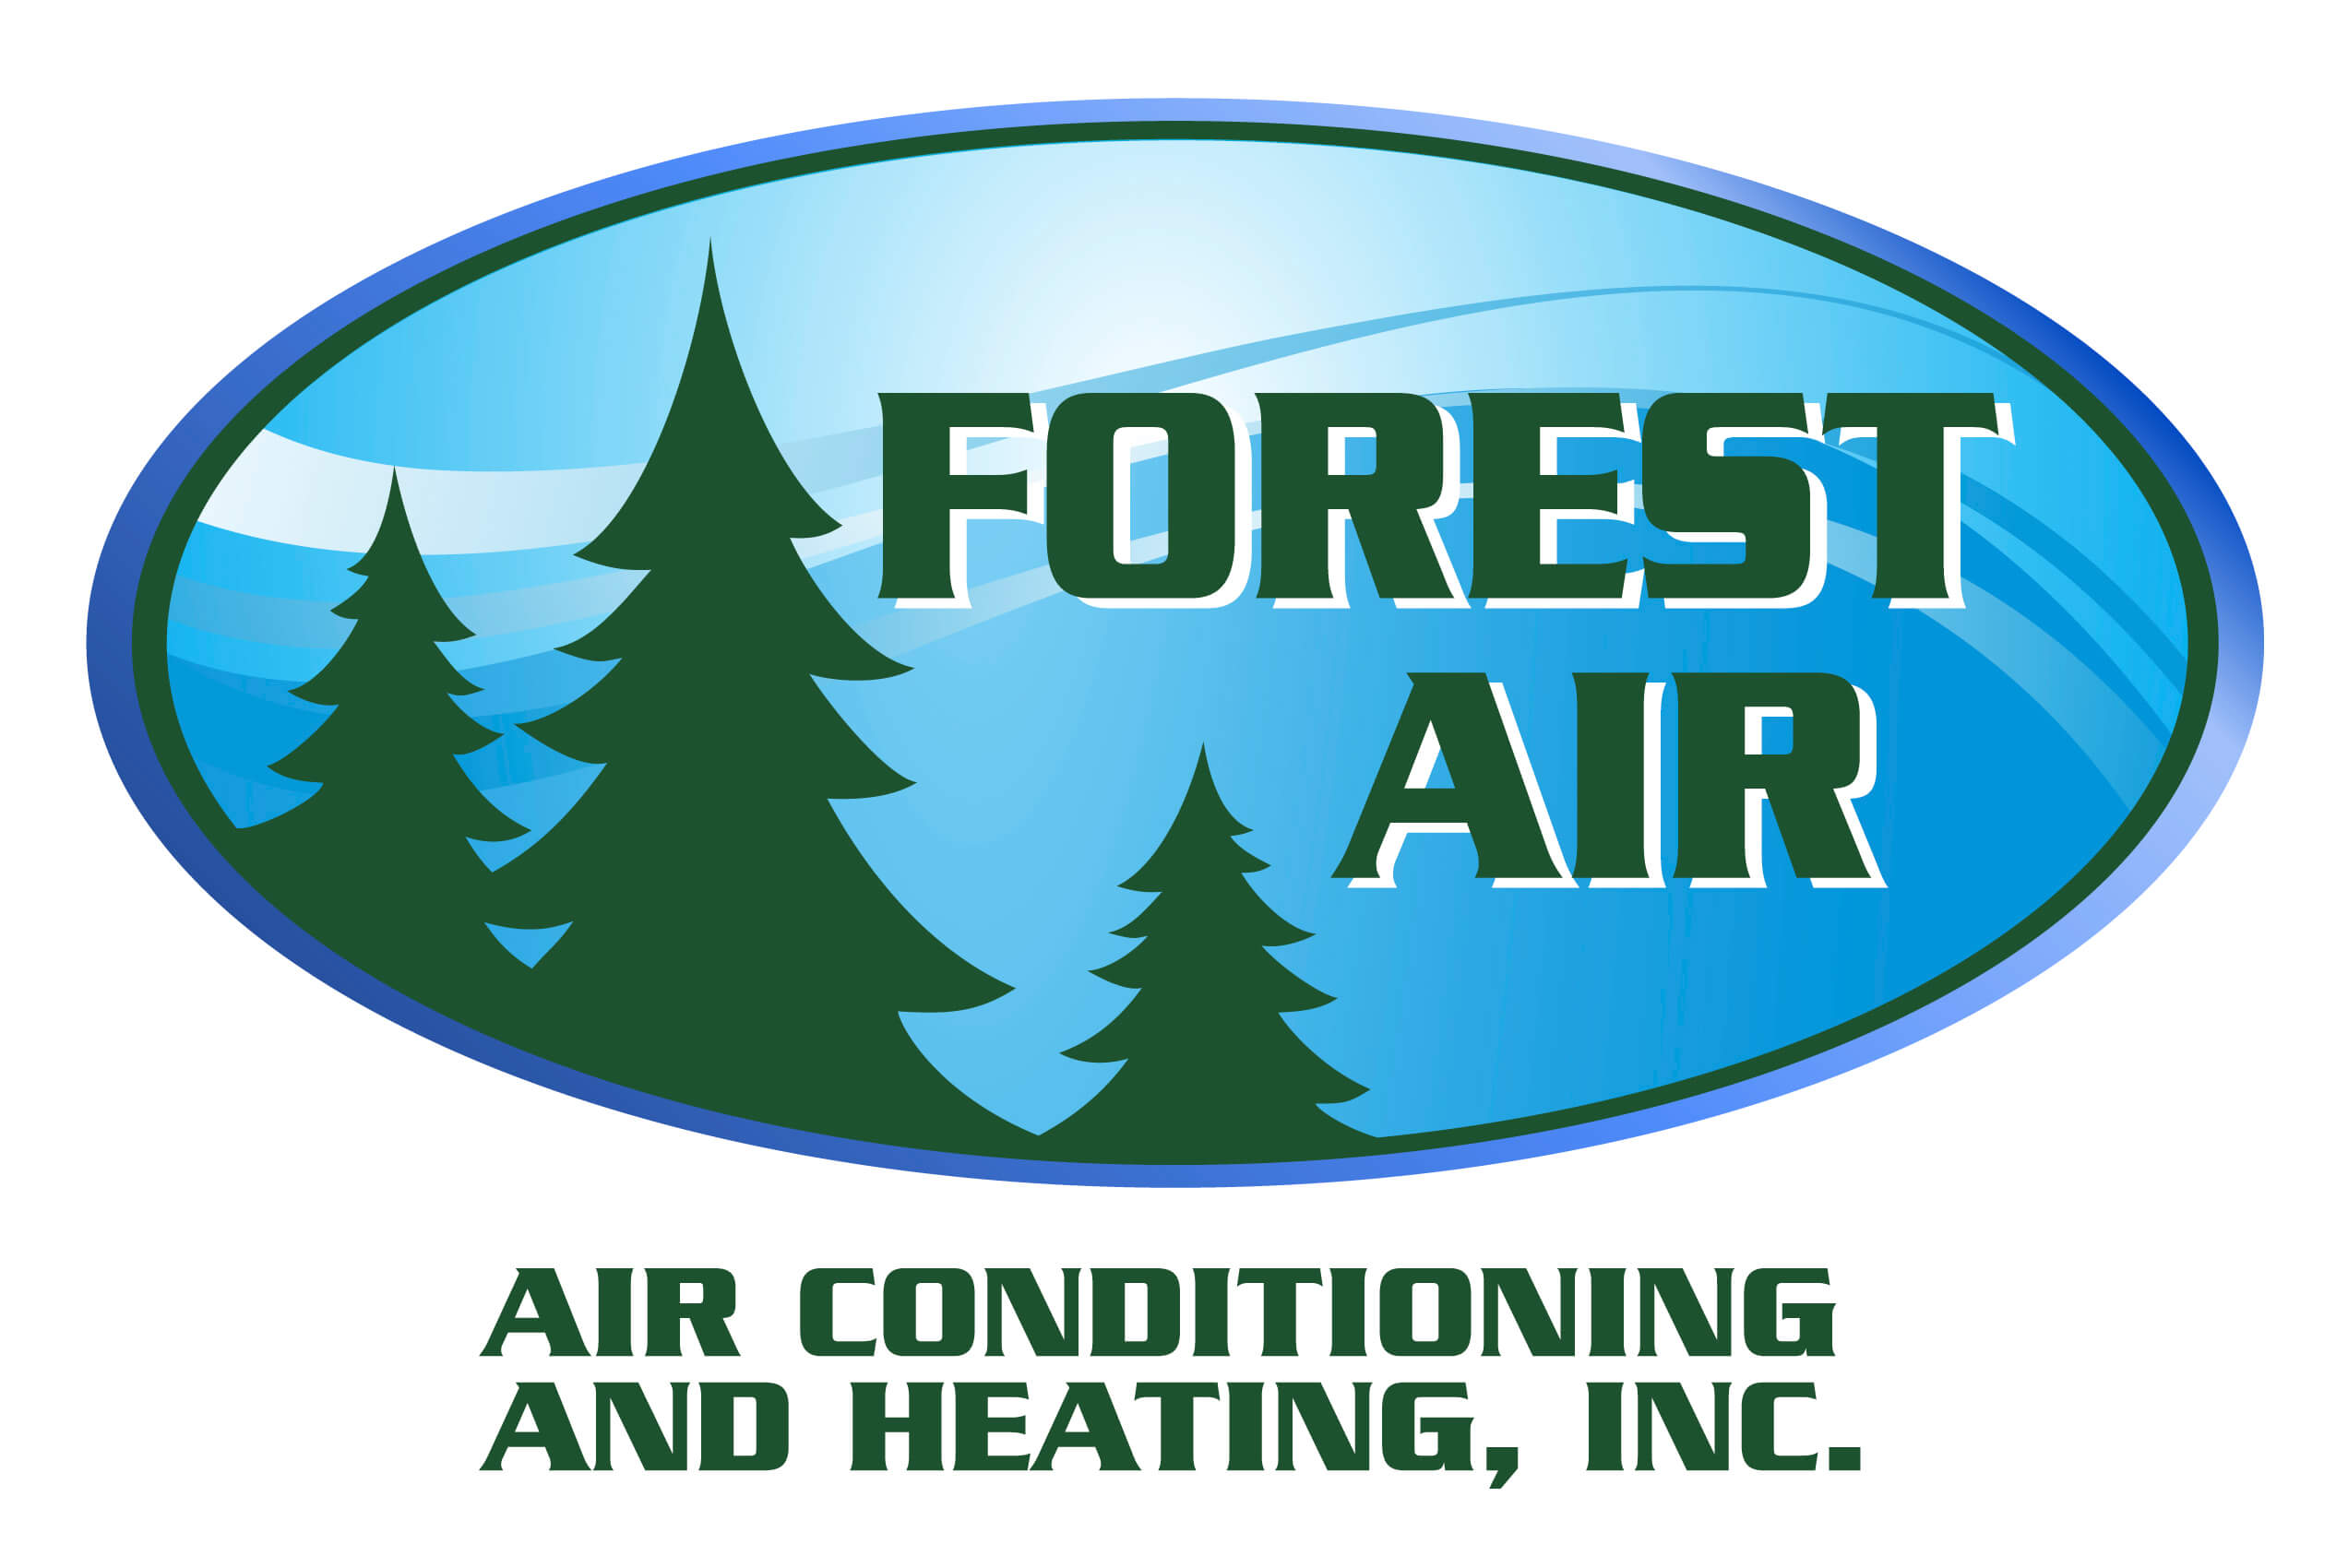 Forest Air Conditioning & Heating, Inc.